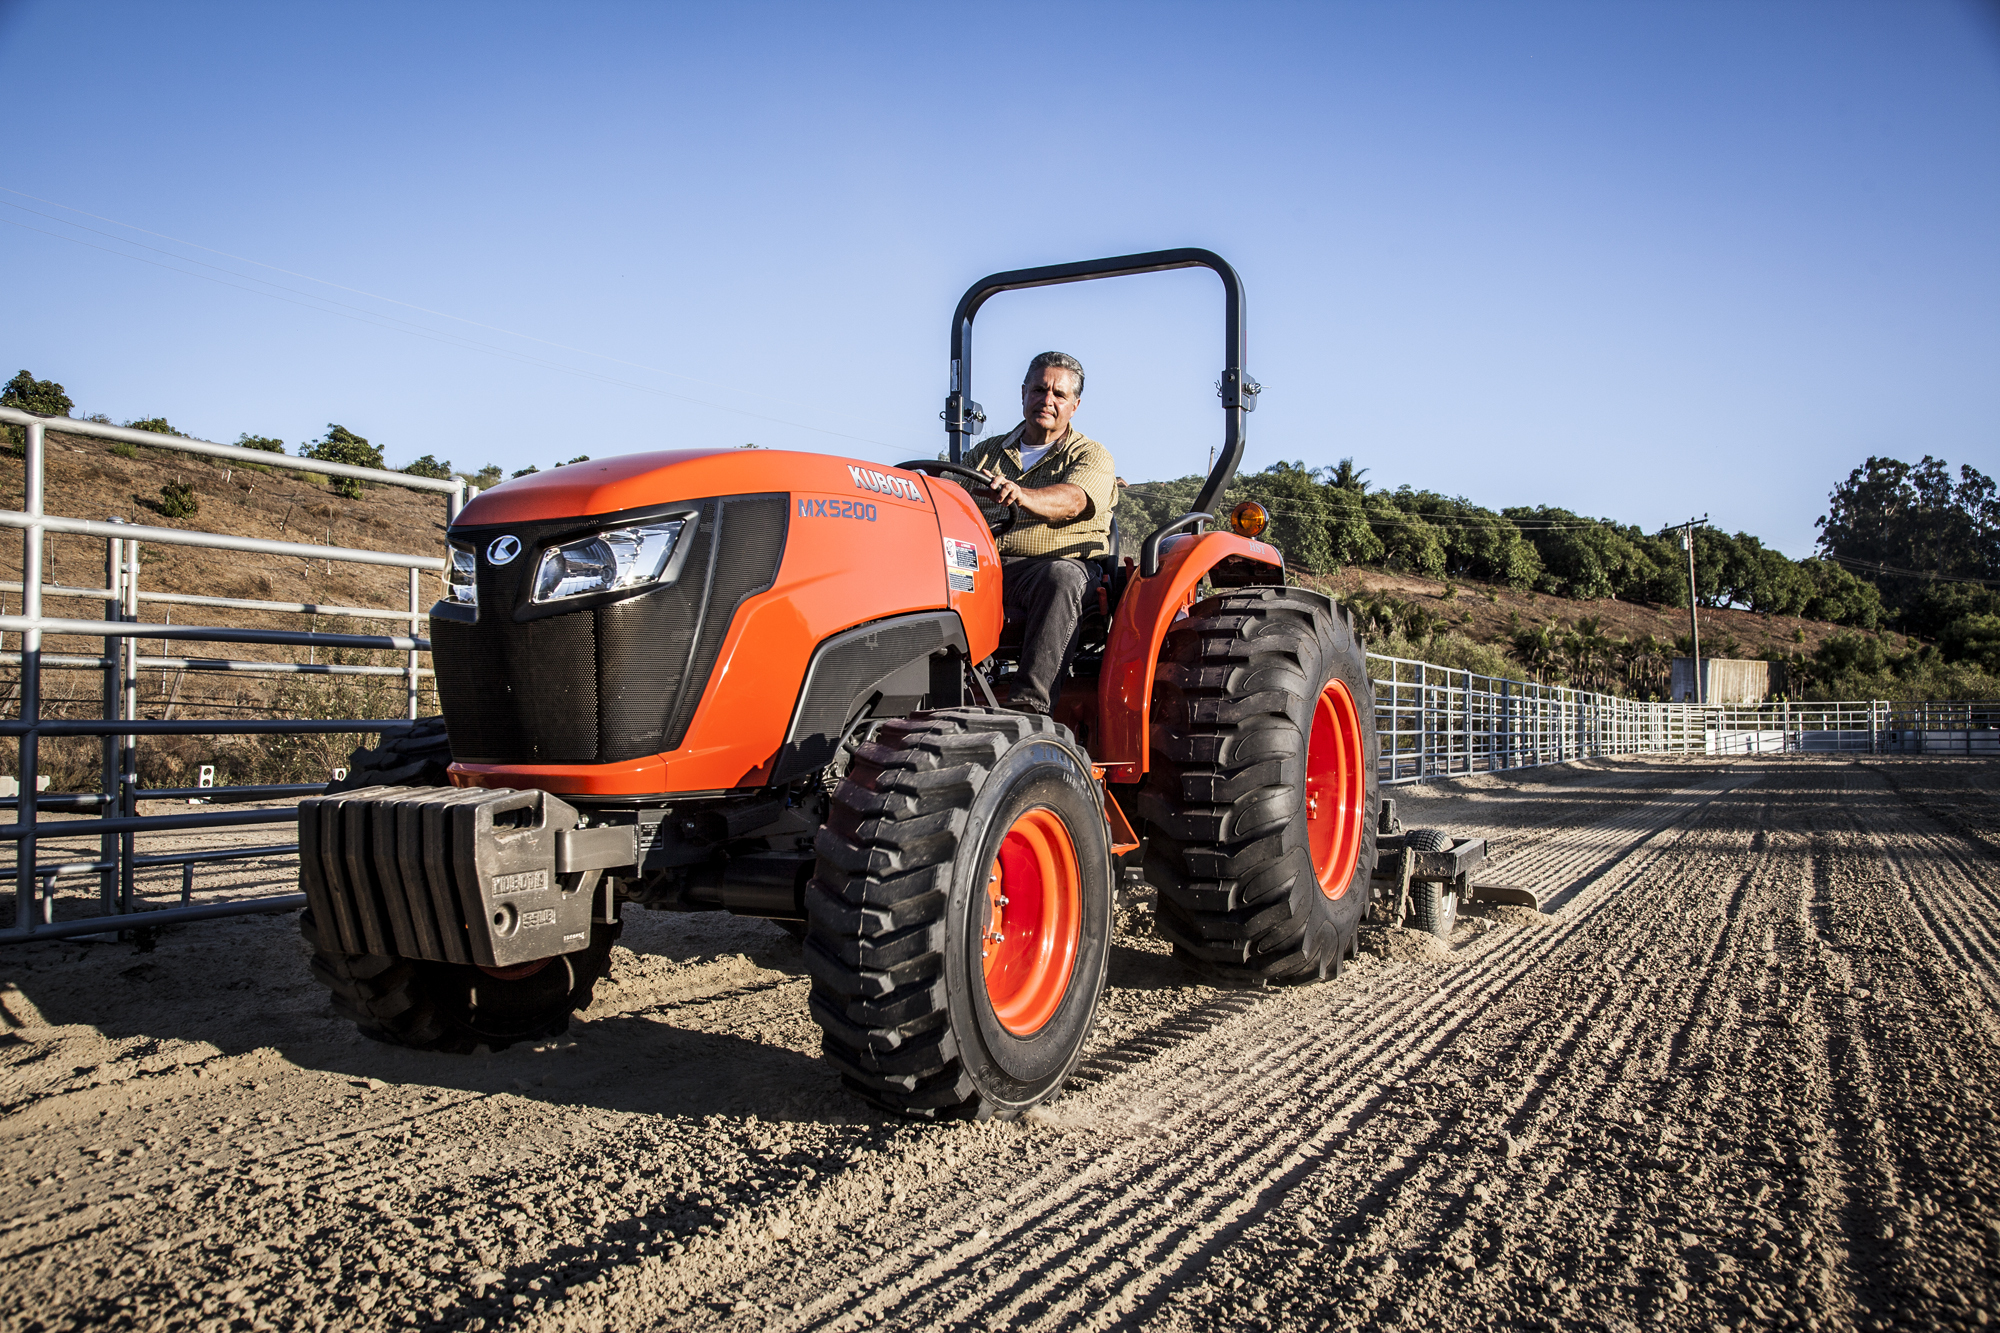 Large Kubota Tractors : Kubota introduces two new models to its mx series diesel